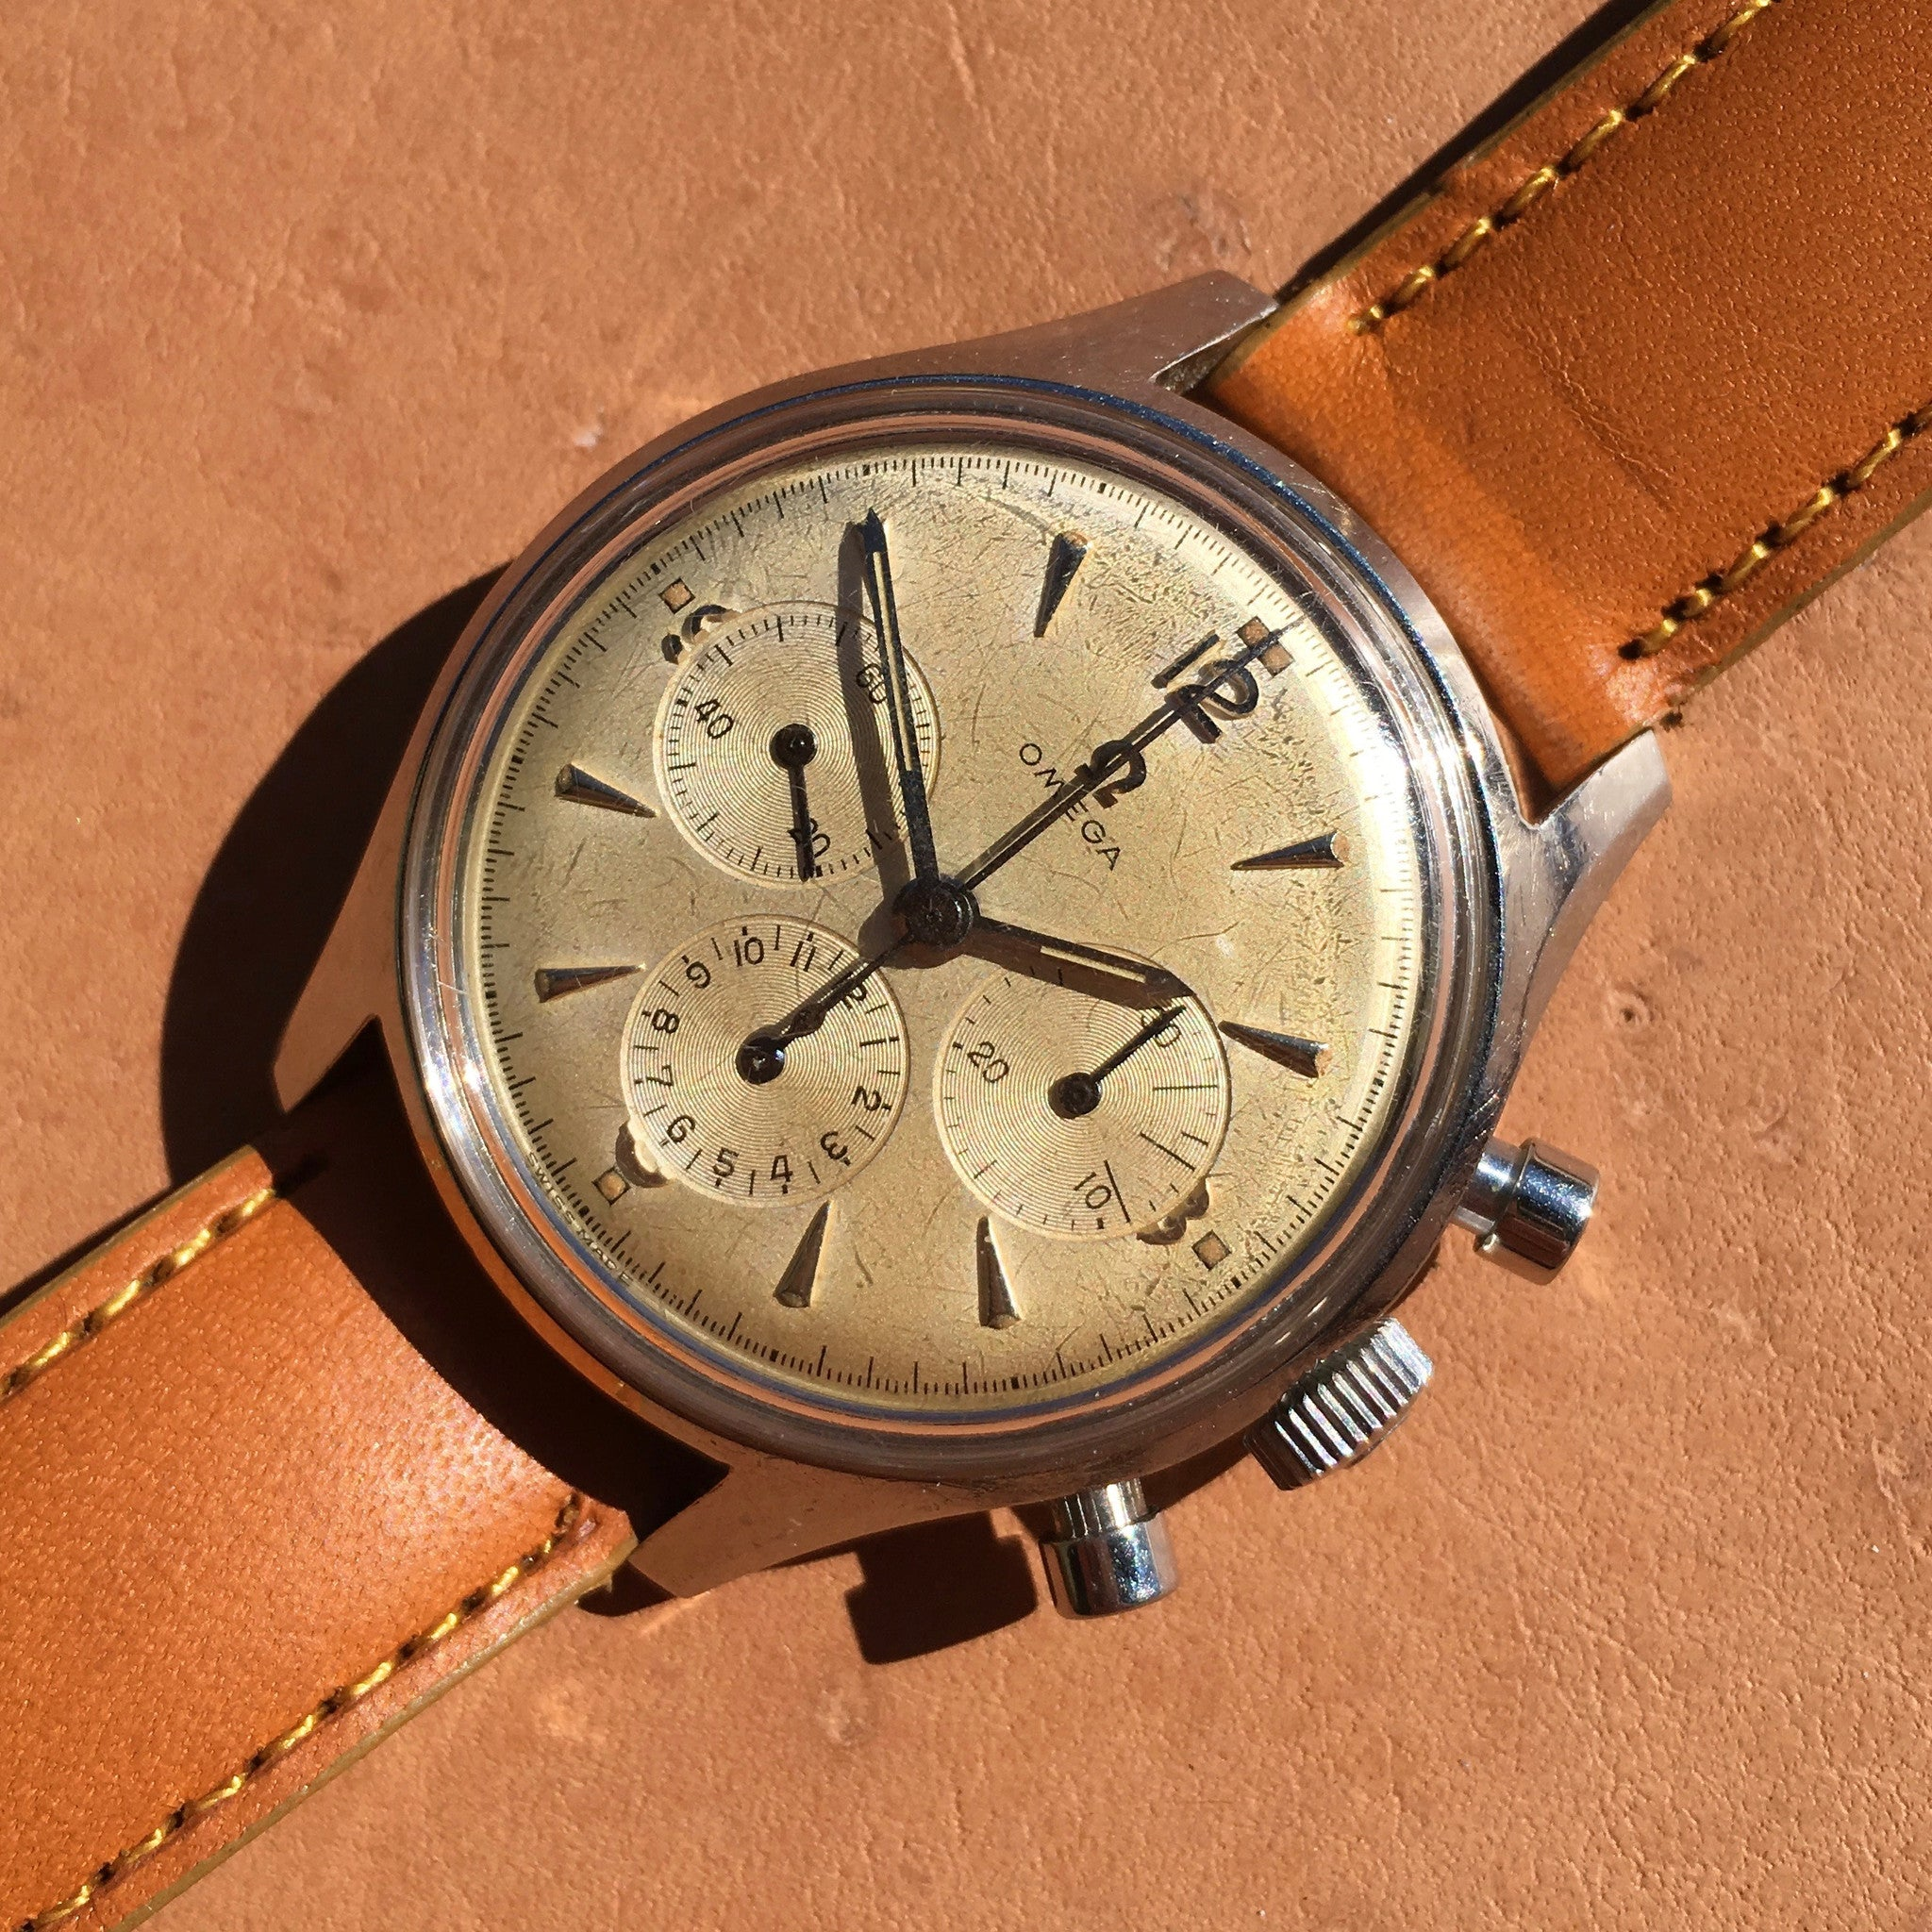 Vintage Omega 2451-6 Steel Chronograph Cal. 321 Manual 1950's Wristwatch 35mm - Hashtag Watch Company